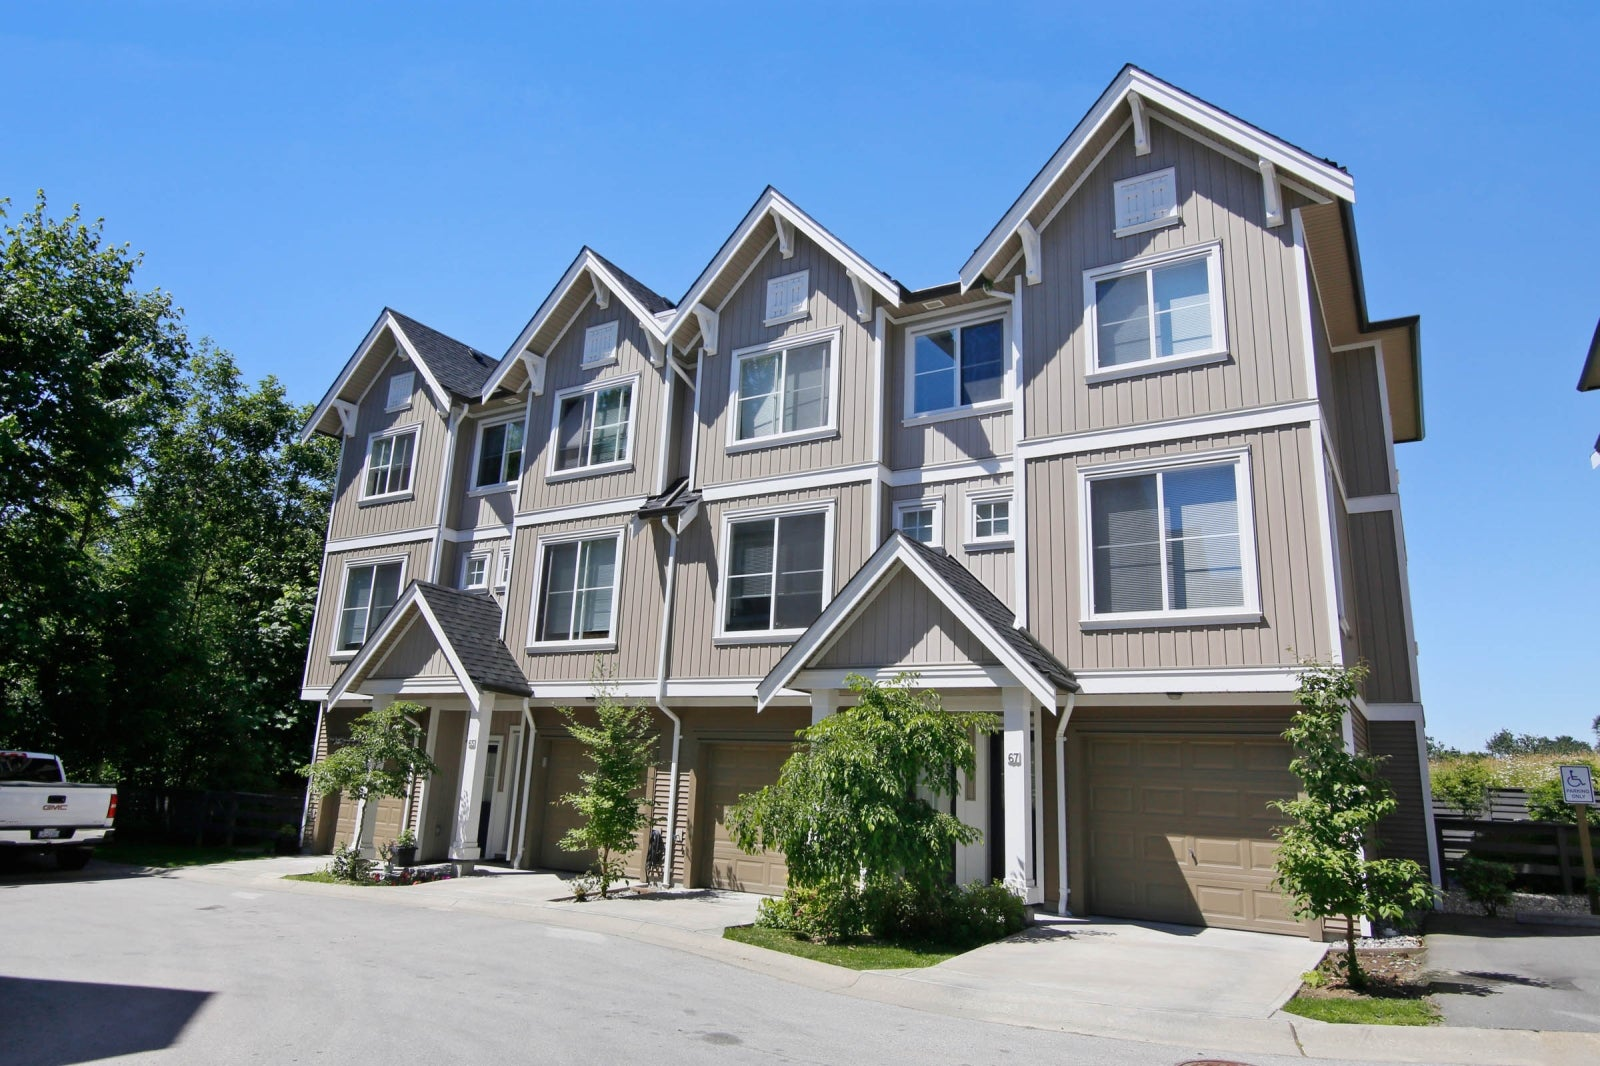 67 31032 WESTRIDGE PLACE - Abbotsford West Townhouse for sale, 3 Bedrooms (R2181867) #1